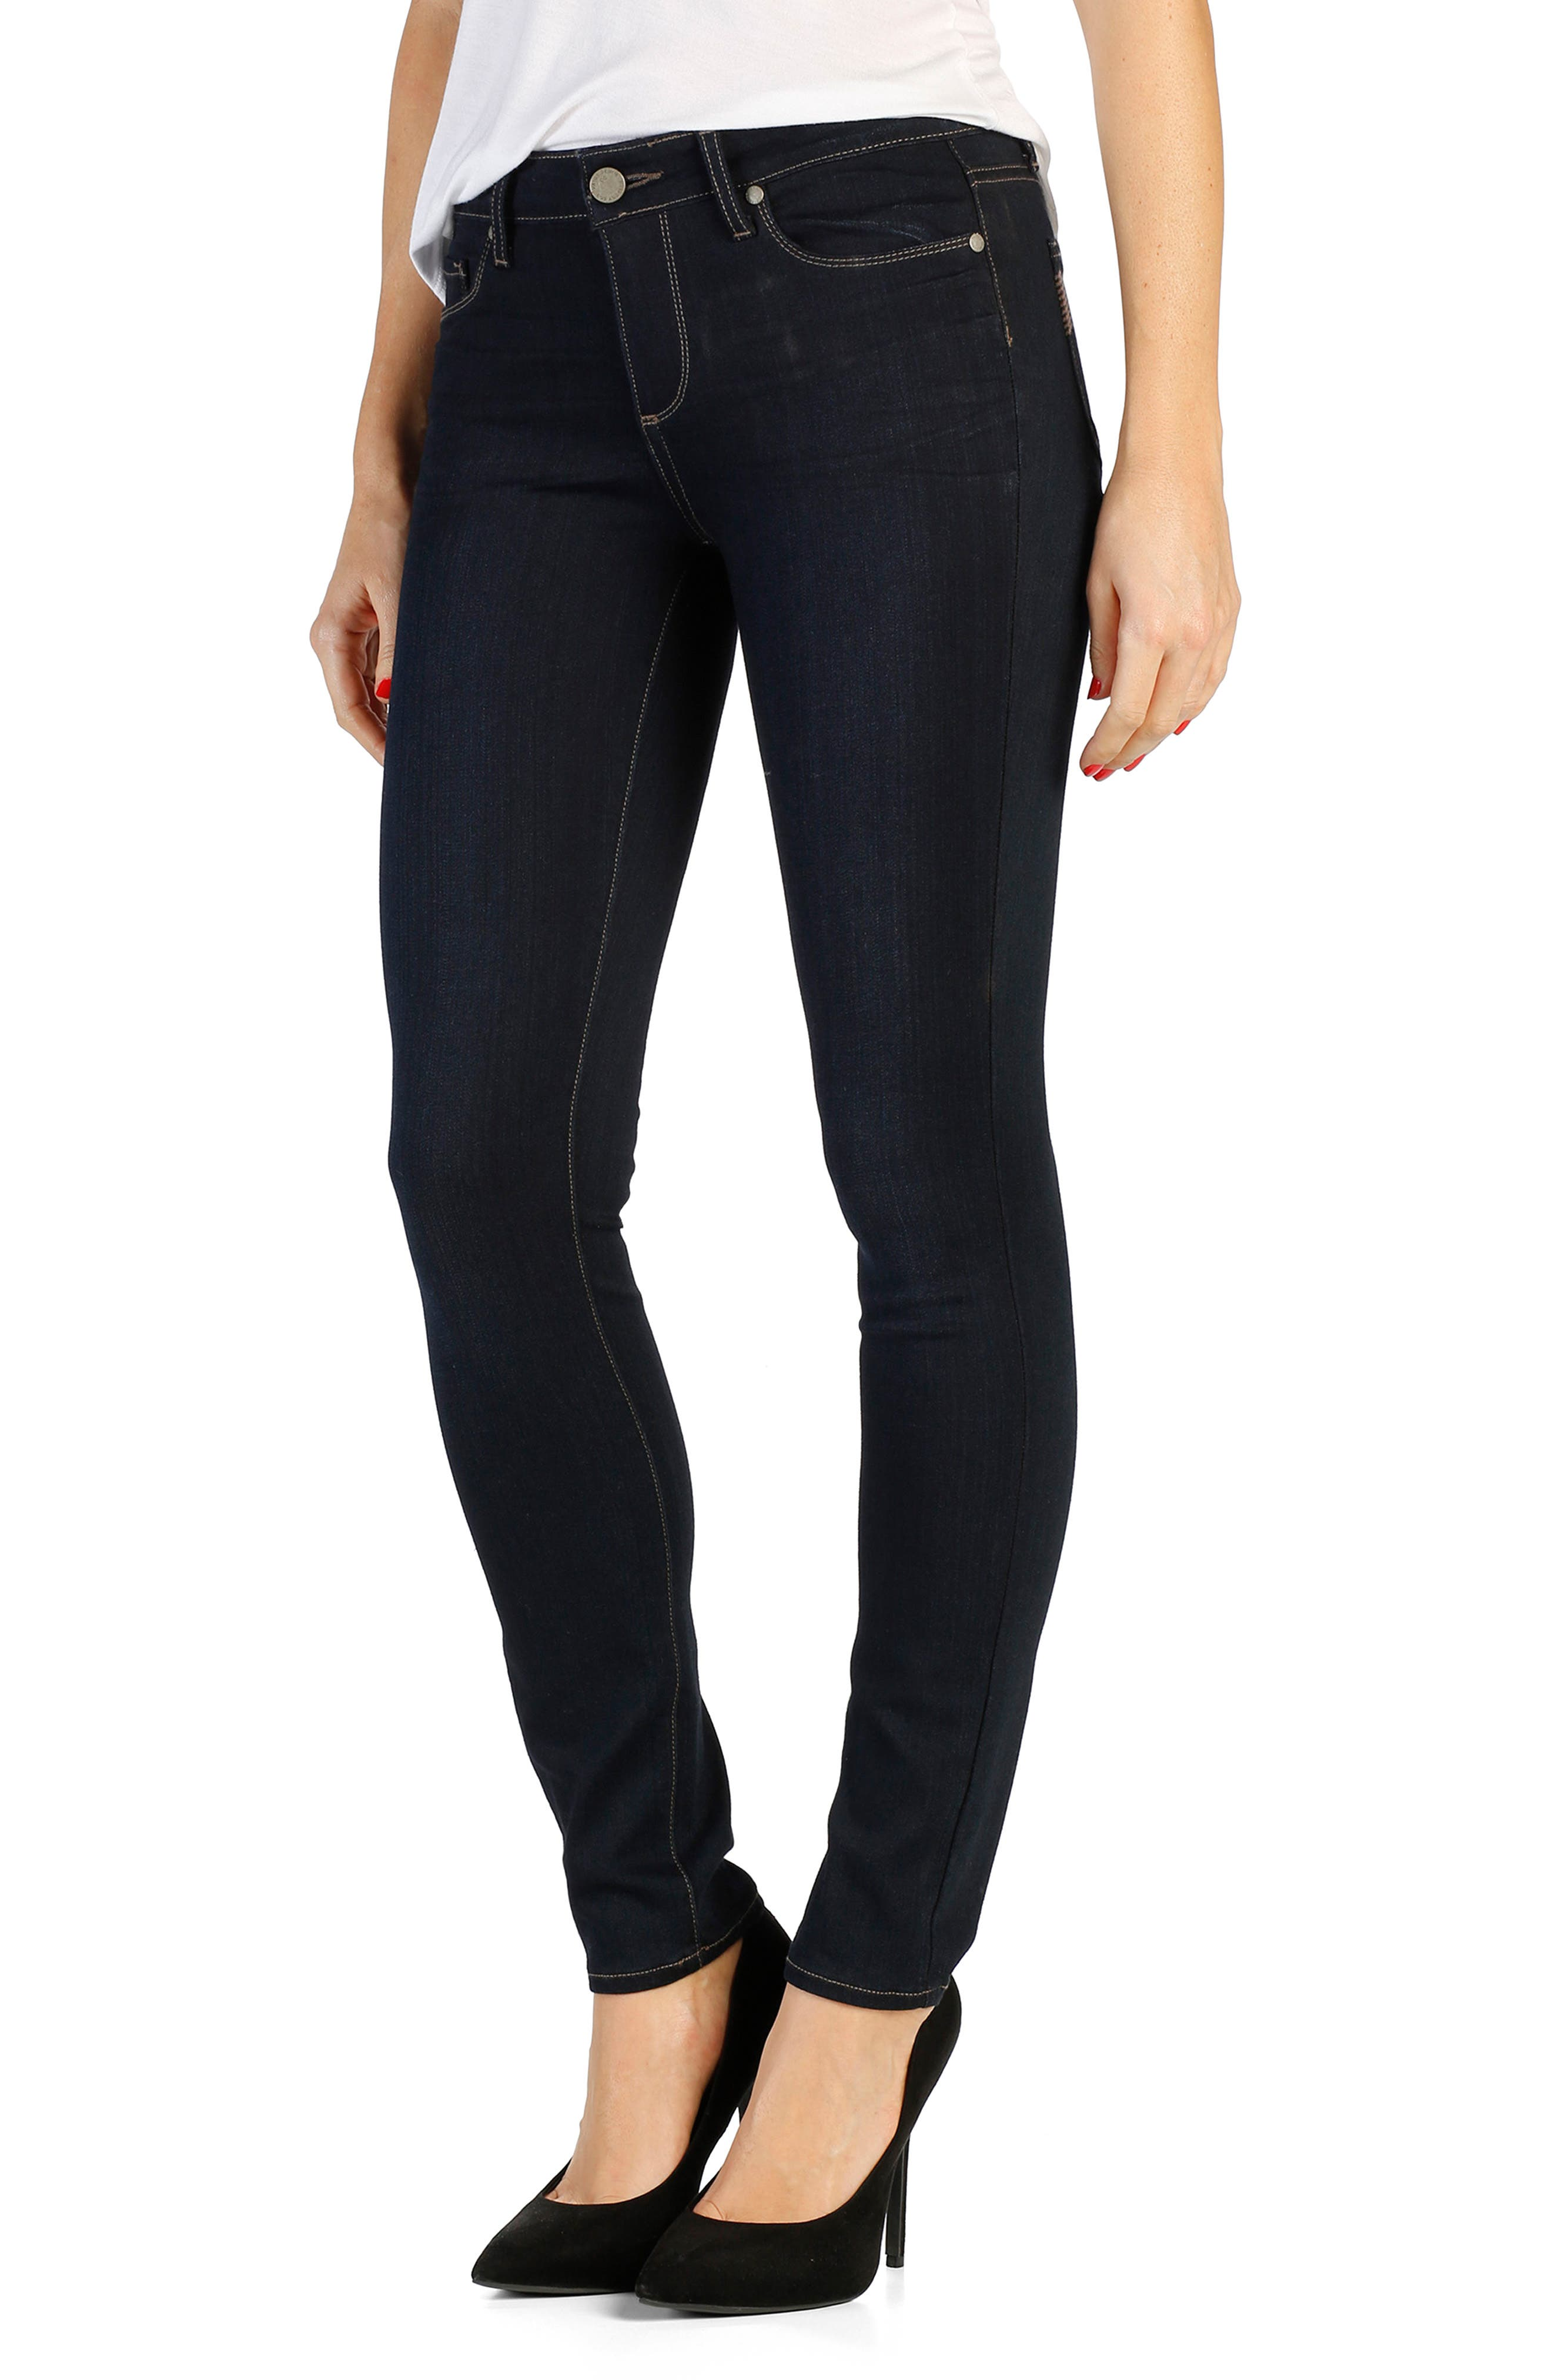 Alternate Image 1 Selected - PAIGE Transcend - Leggy Ultra Skinny Jeans (Mona) (Long)